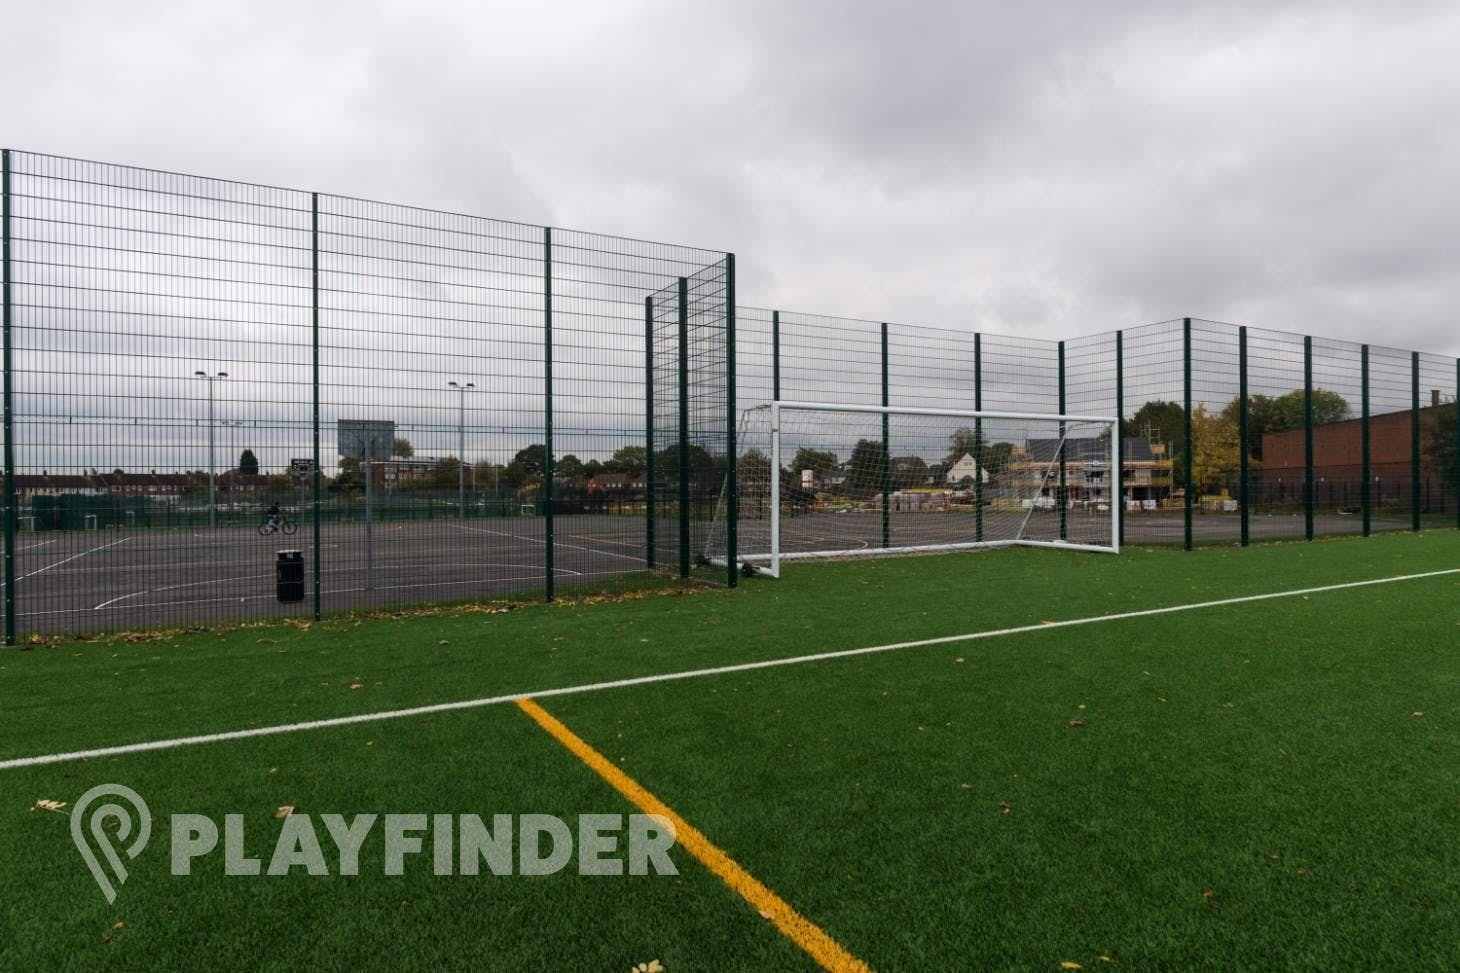 Manchester Enterprise Academy Wythenshawe 9 a side | 3G Astroturf football pitch